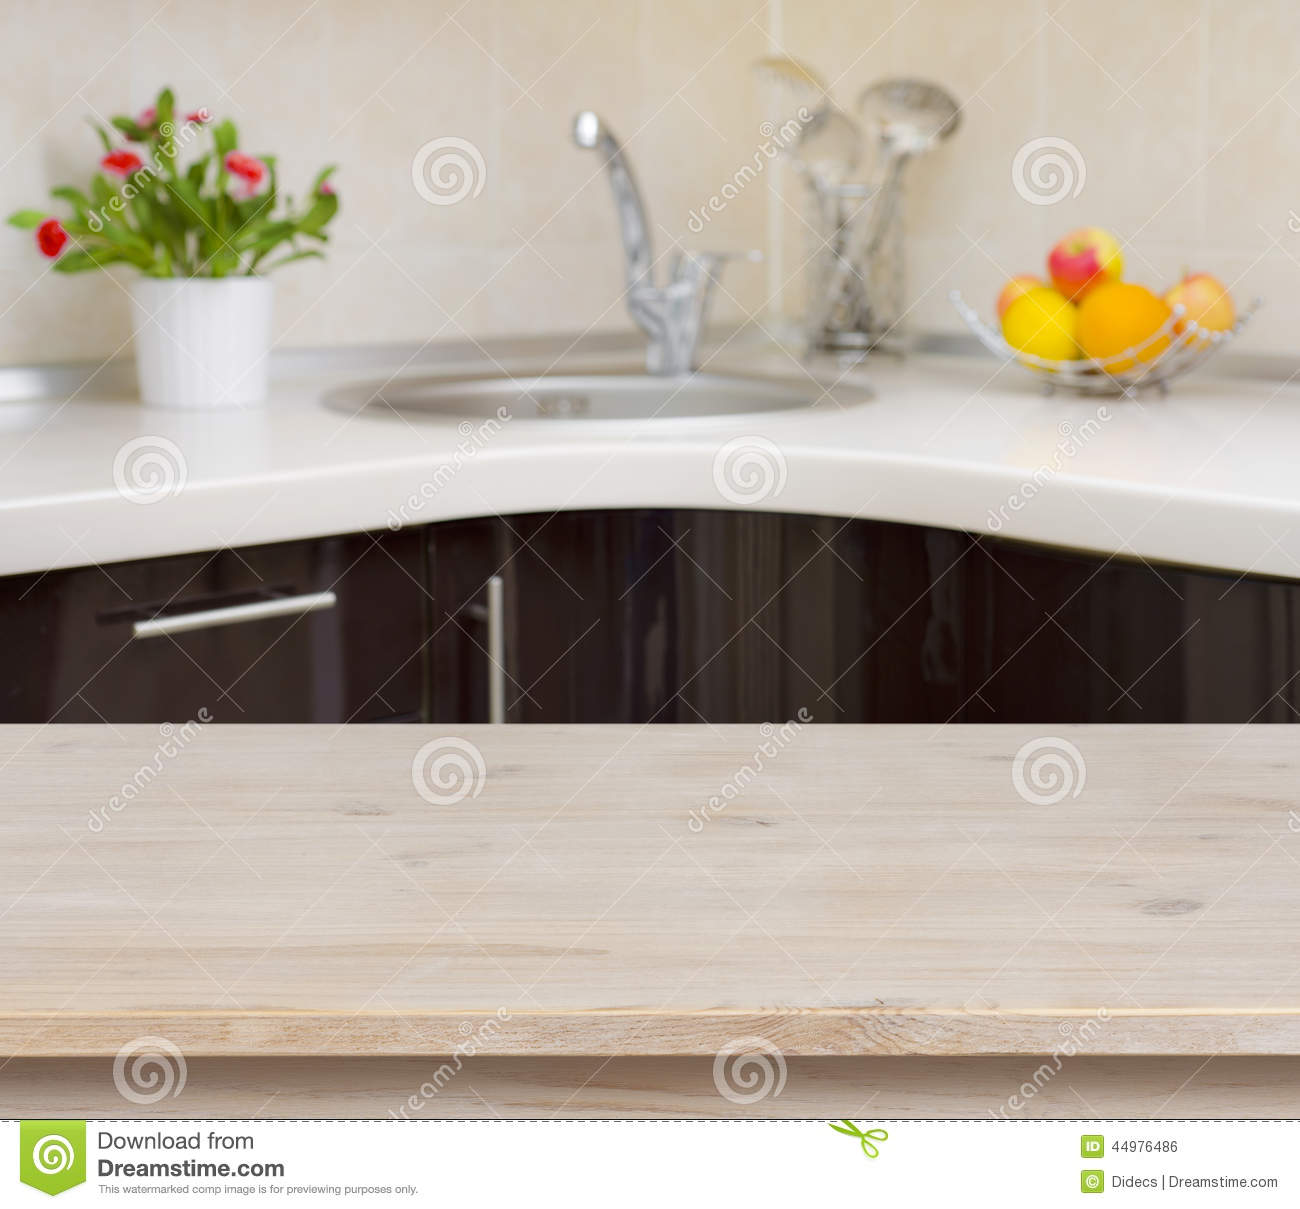 kitchen wooden utensils instock cabinets table on faucet interior background stock ...